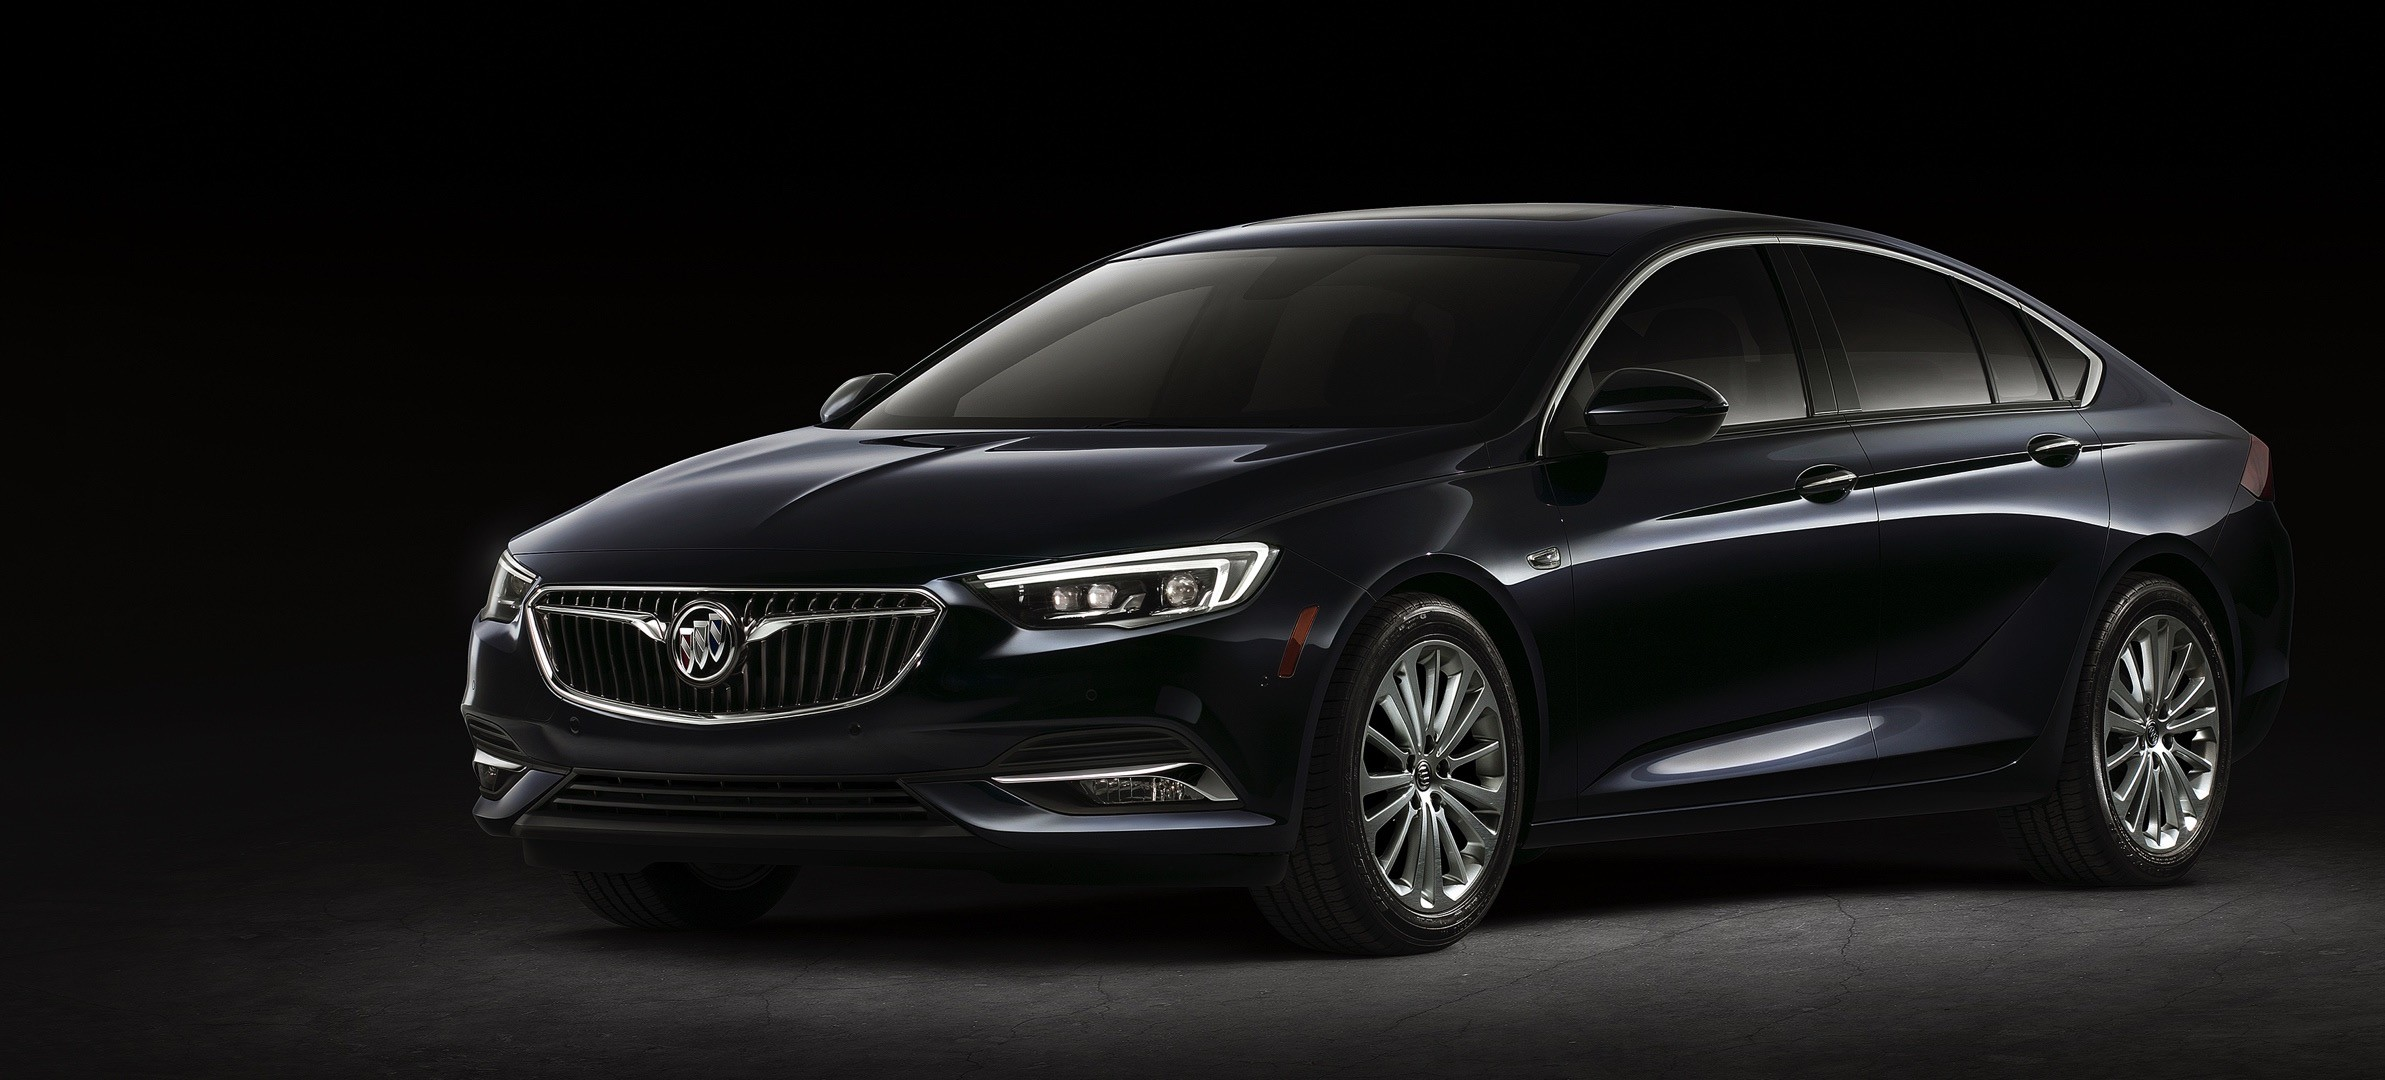 motor and trend regal cars reviews front quarter three price rating buick